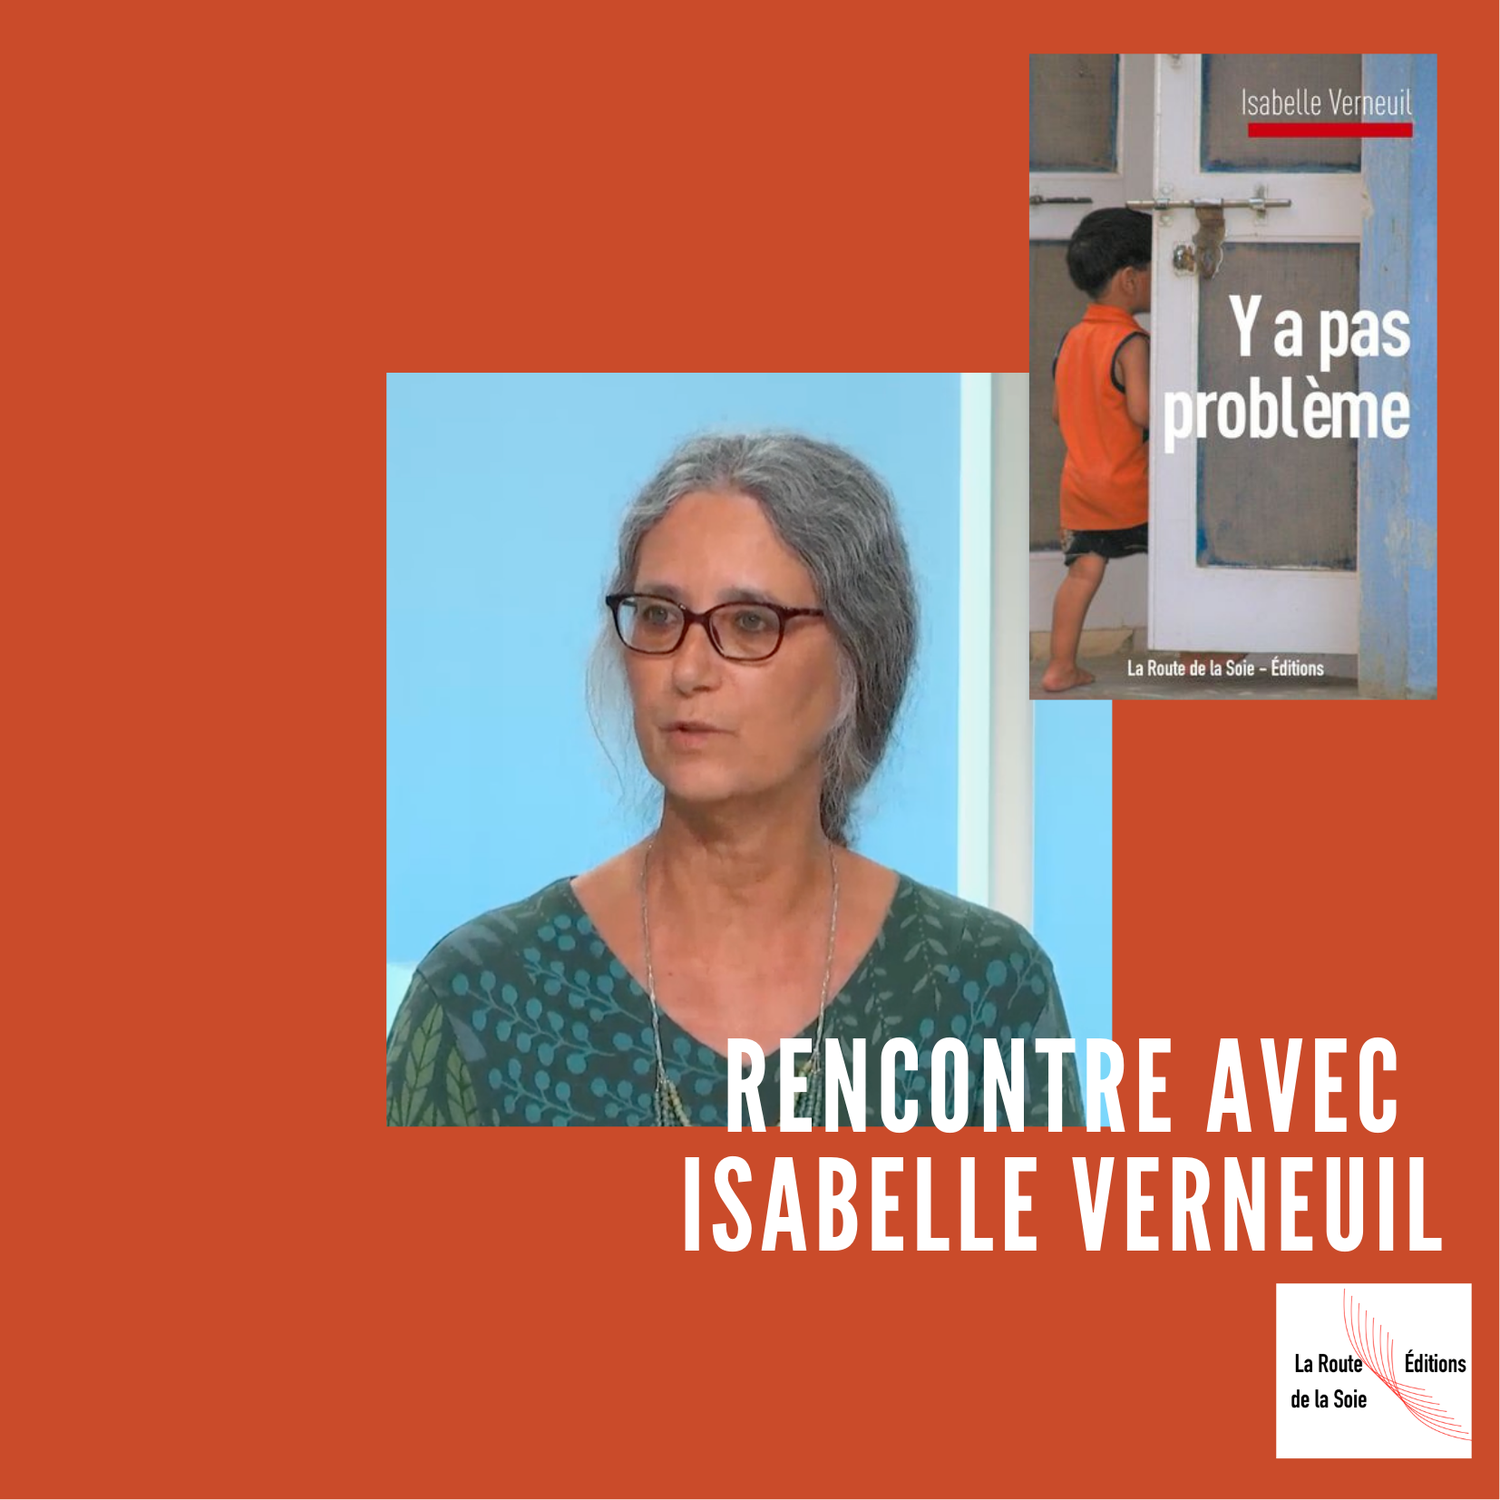 Isabelle Verneuil